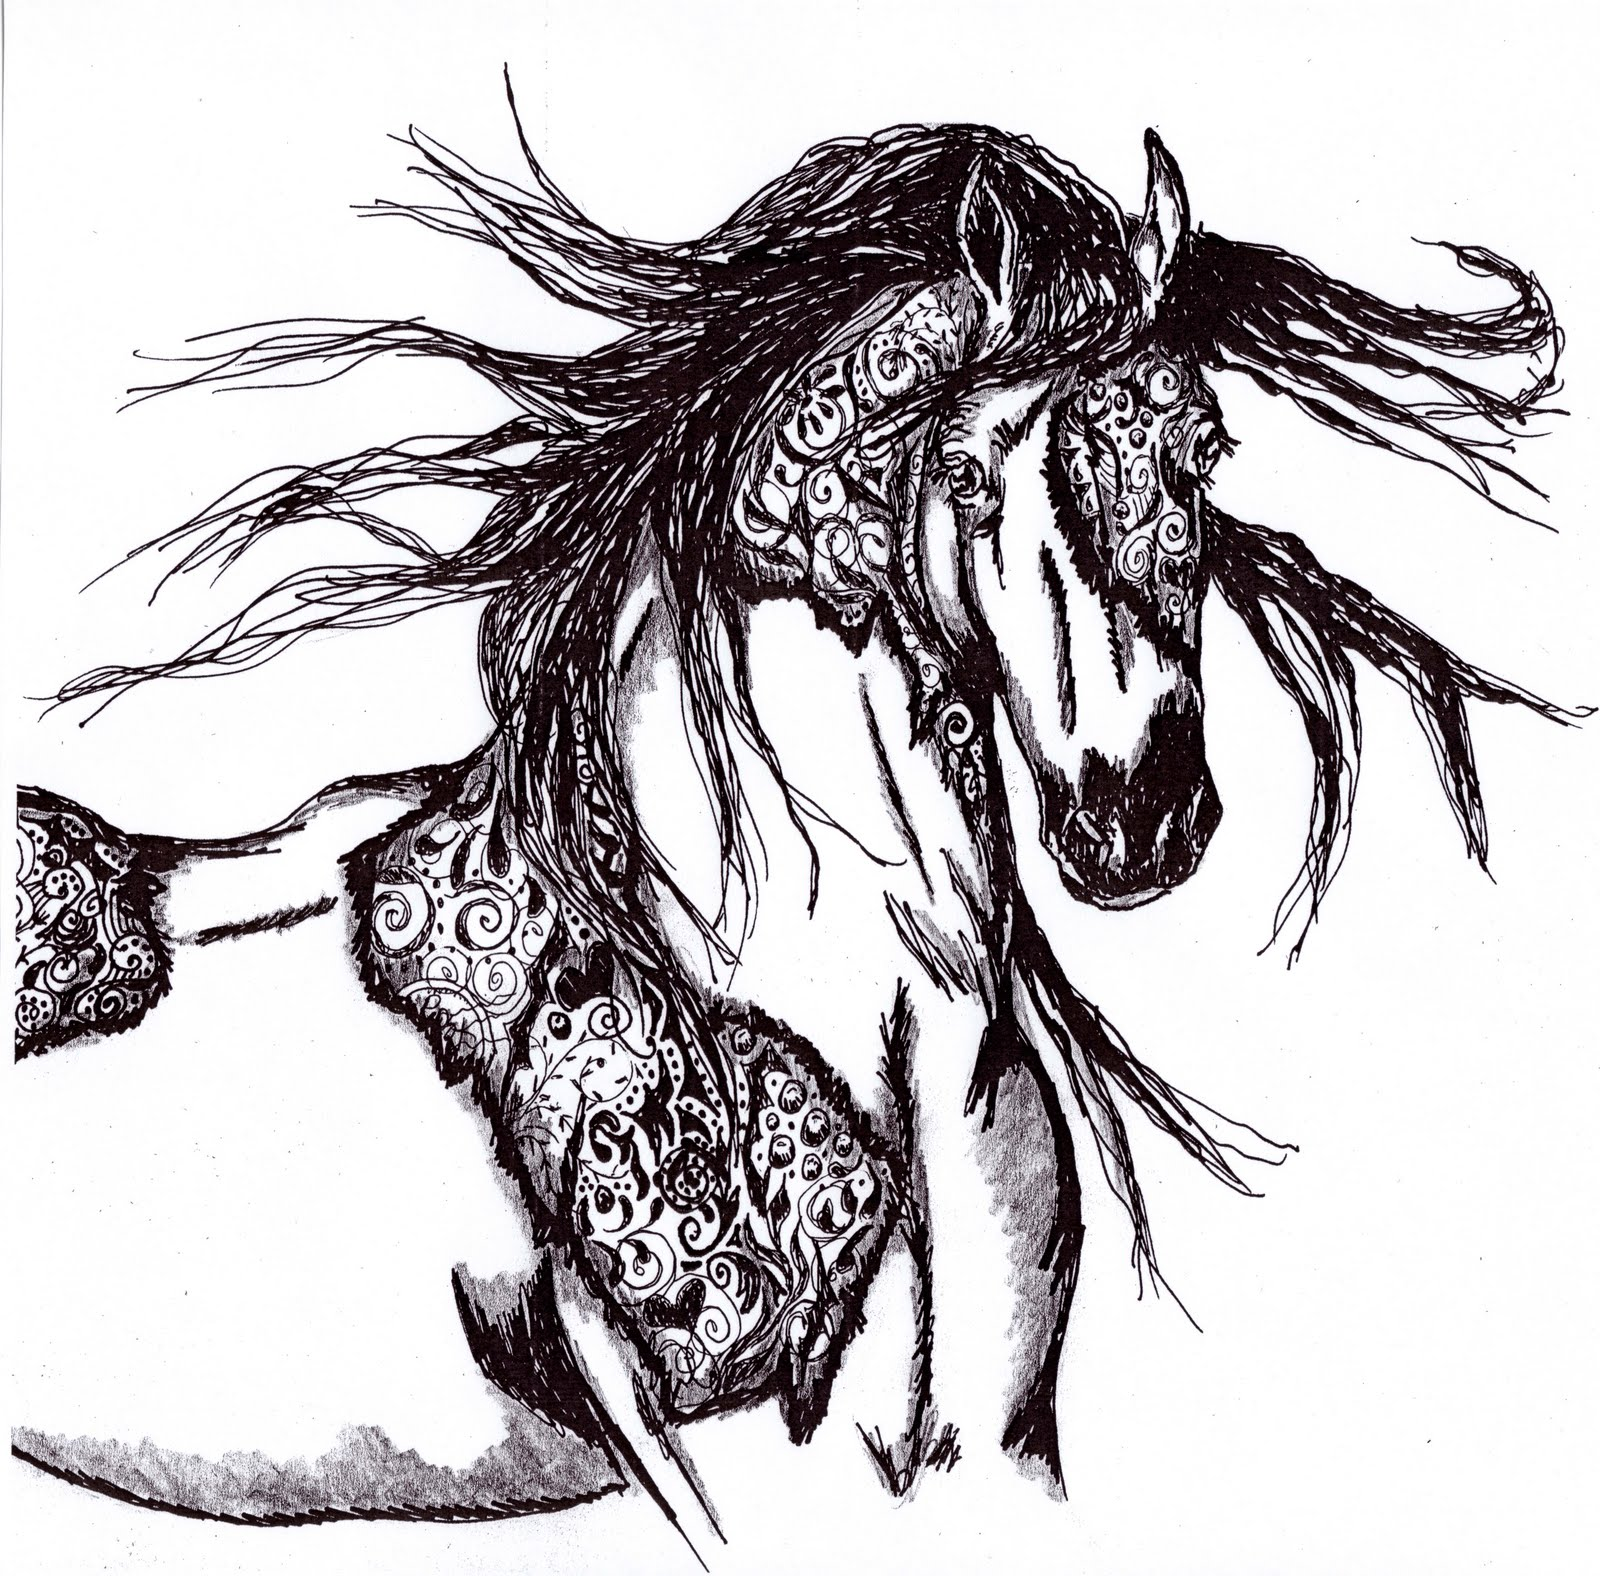 1000 images about zentangled animals horse on pinterest zentangle horse head and horses. Black Bedroom Furniture Sets. Home Design Ideas